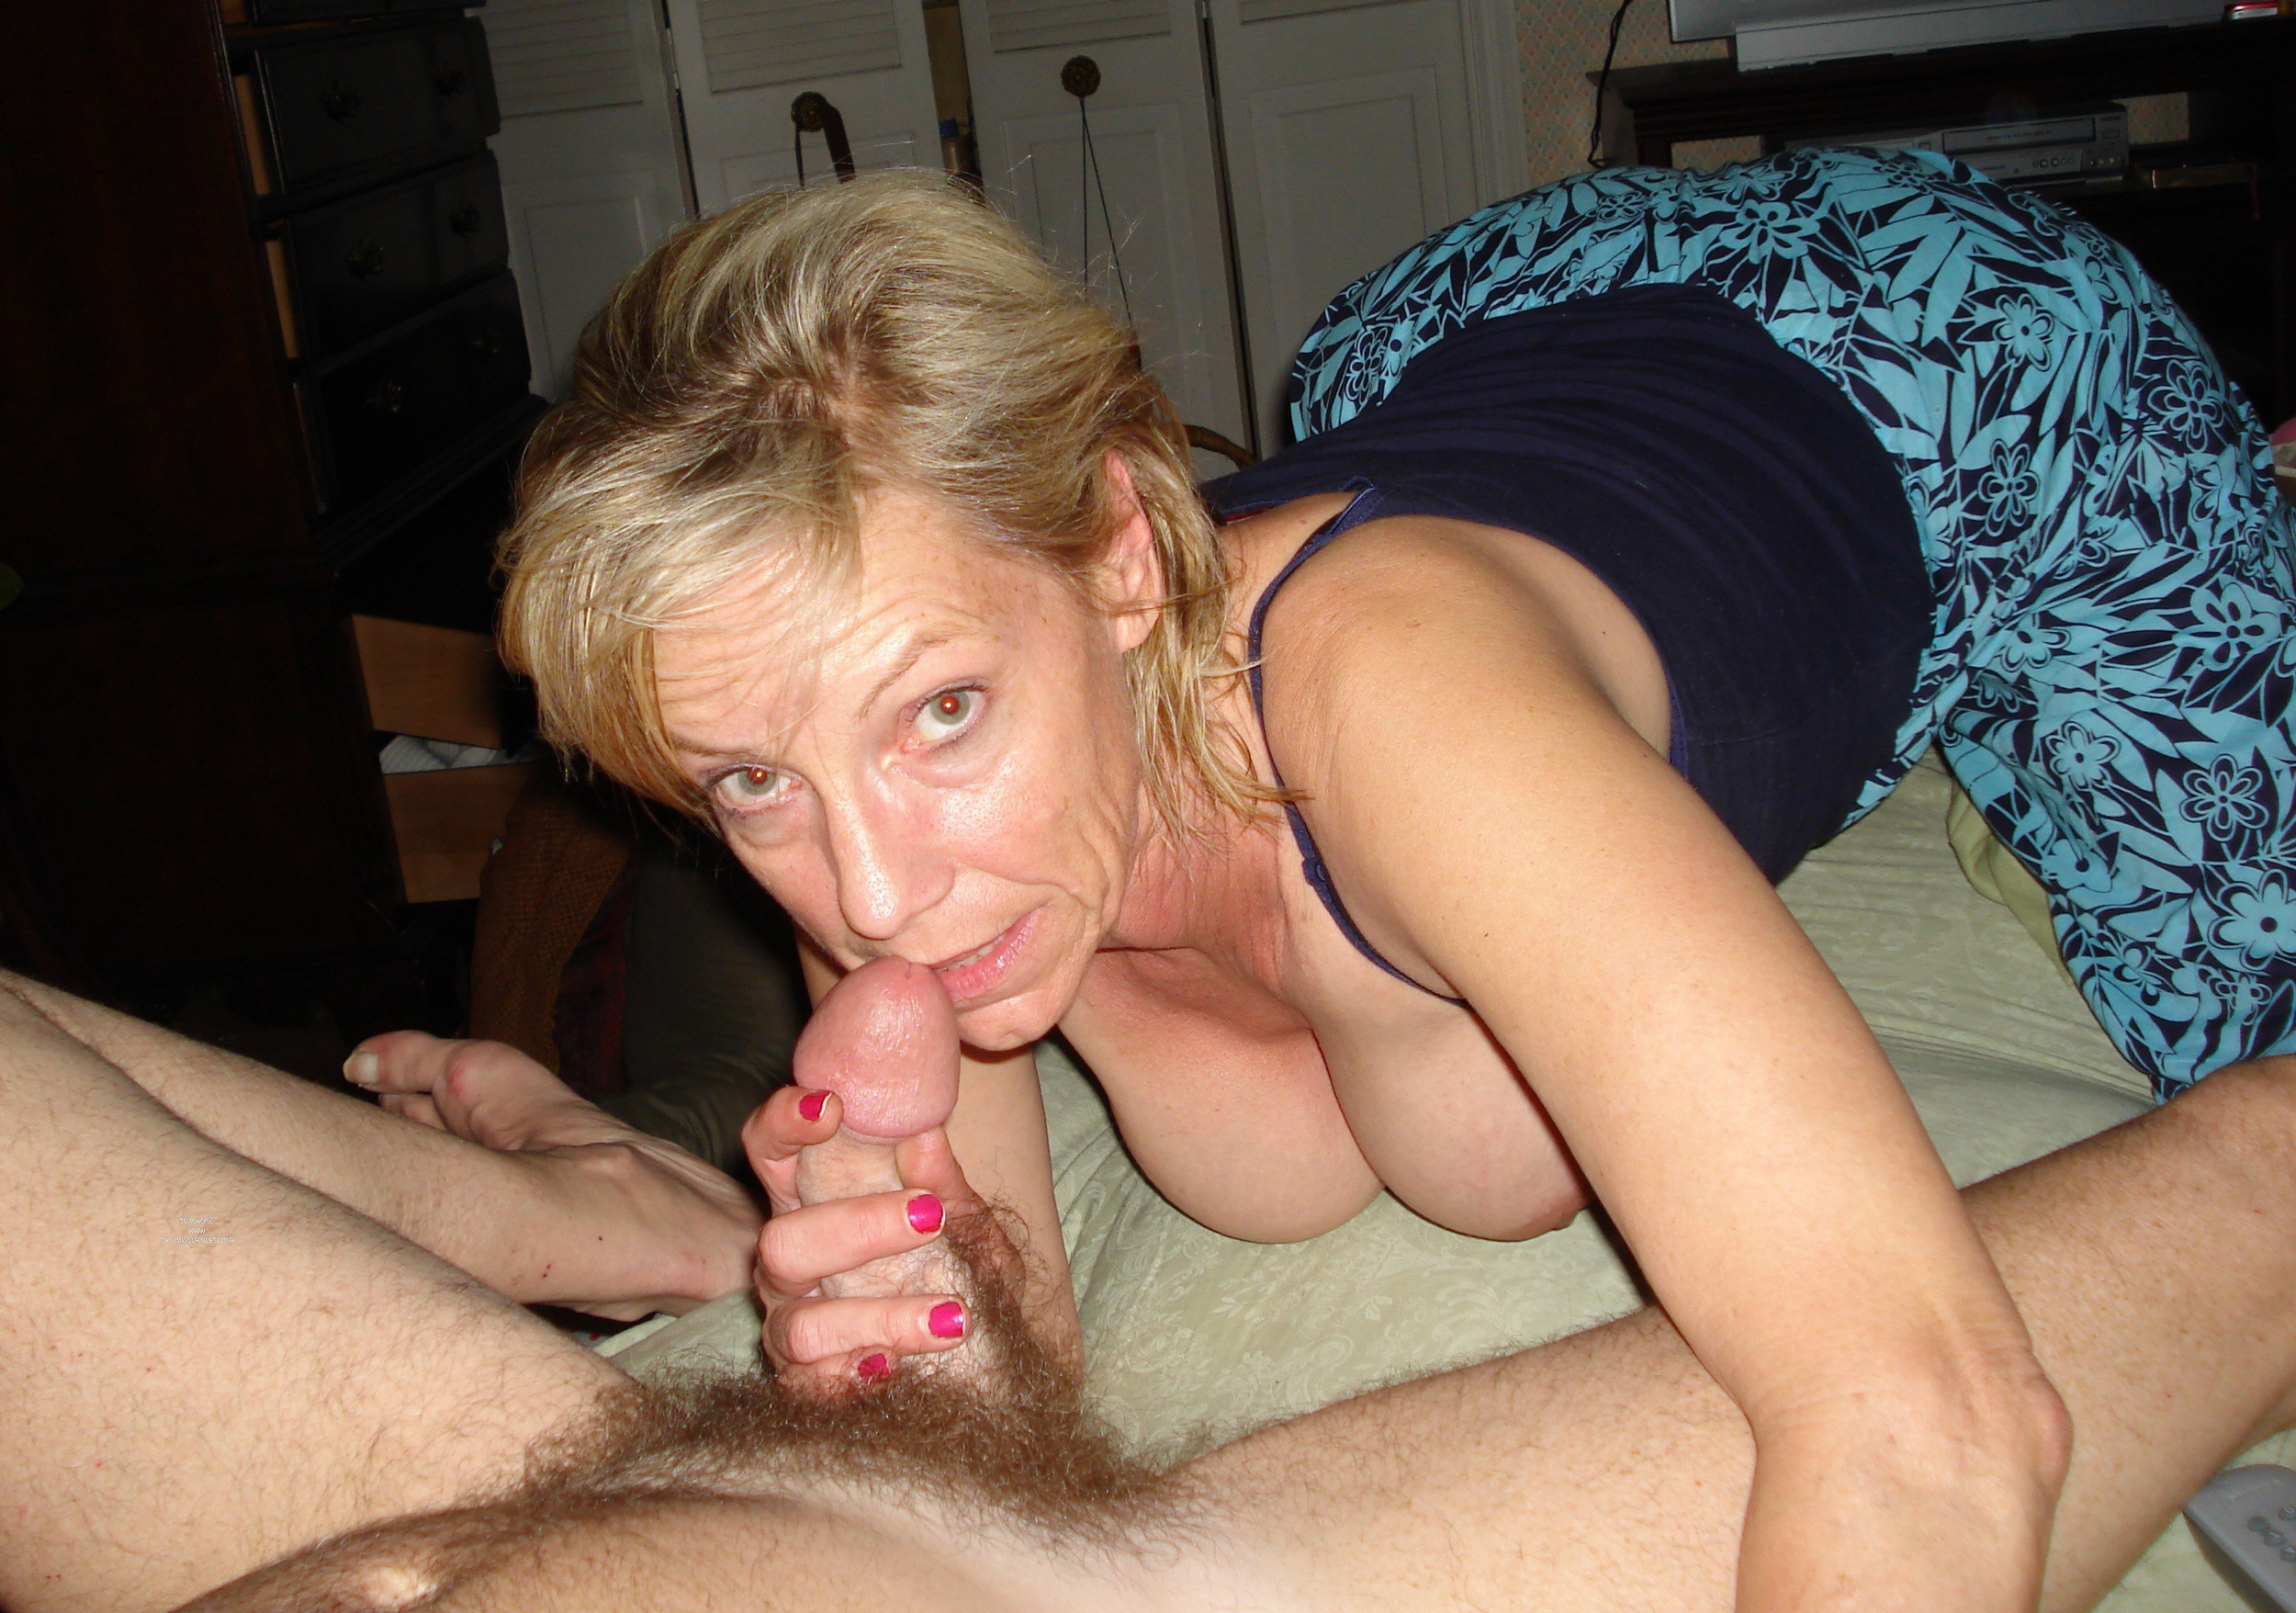 Congratulate, magnificent mature wife giving husband a blowjob congratulate